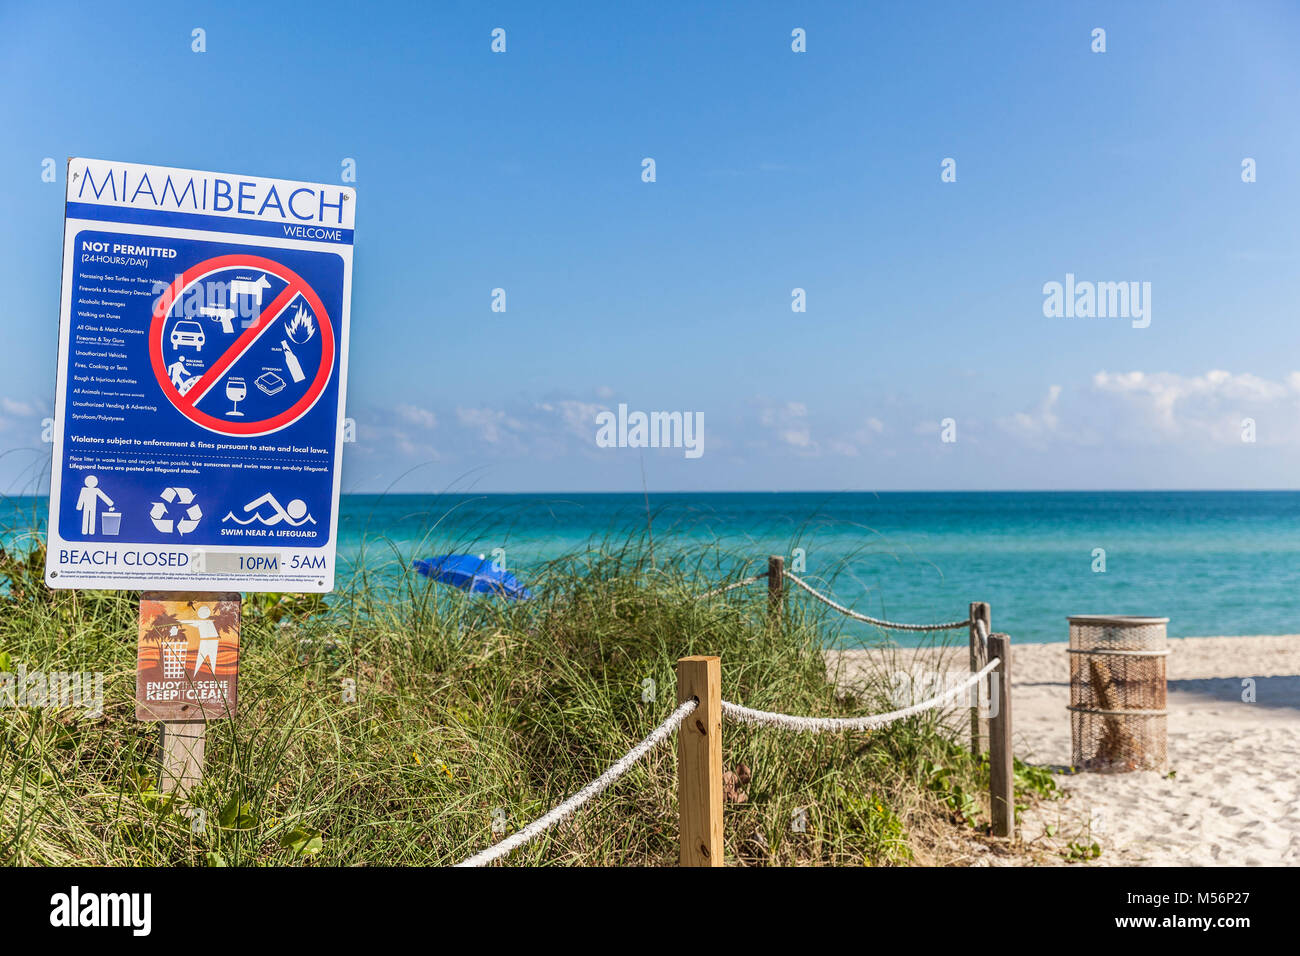 Not permitted sign, Miami Beach, Florida, USA. - Stock Image